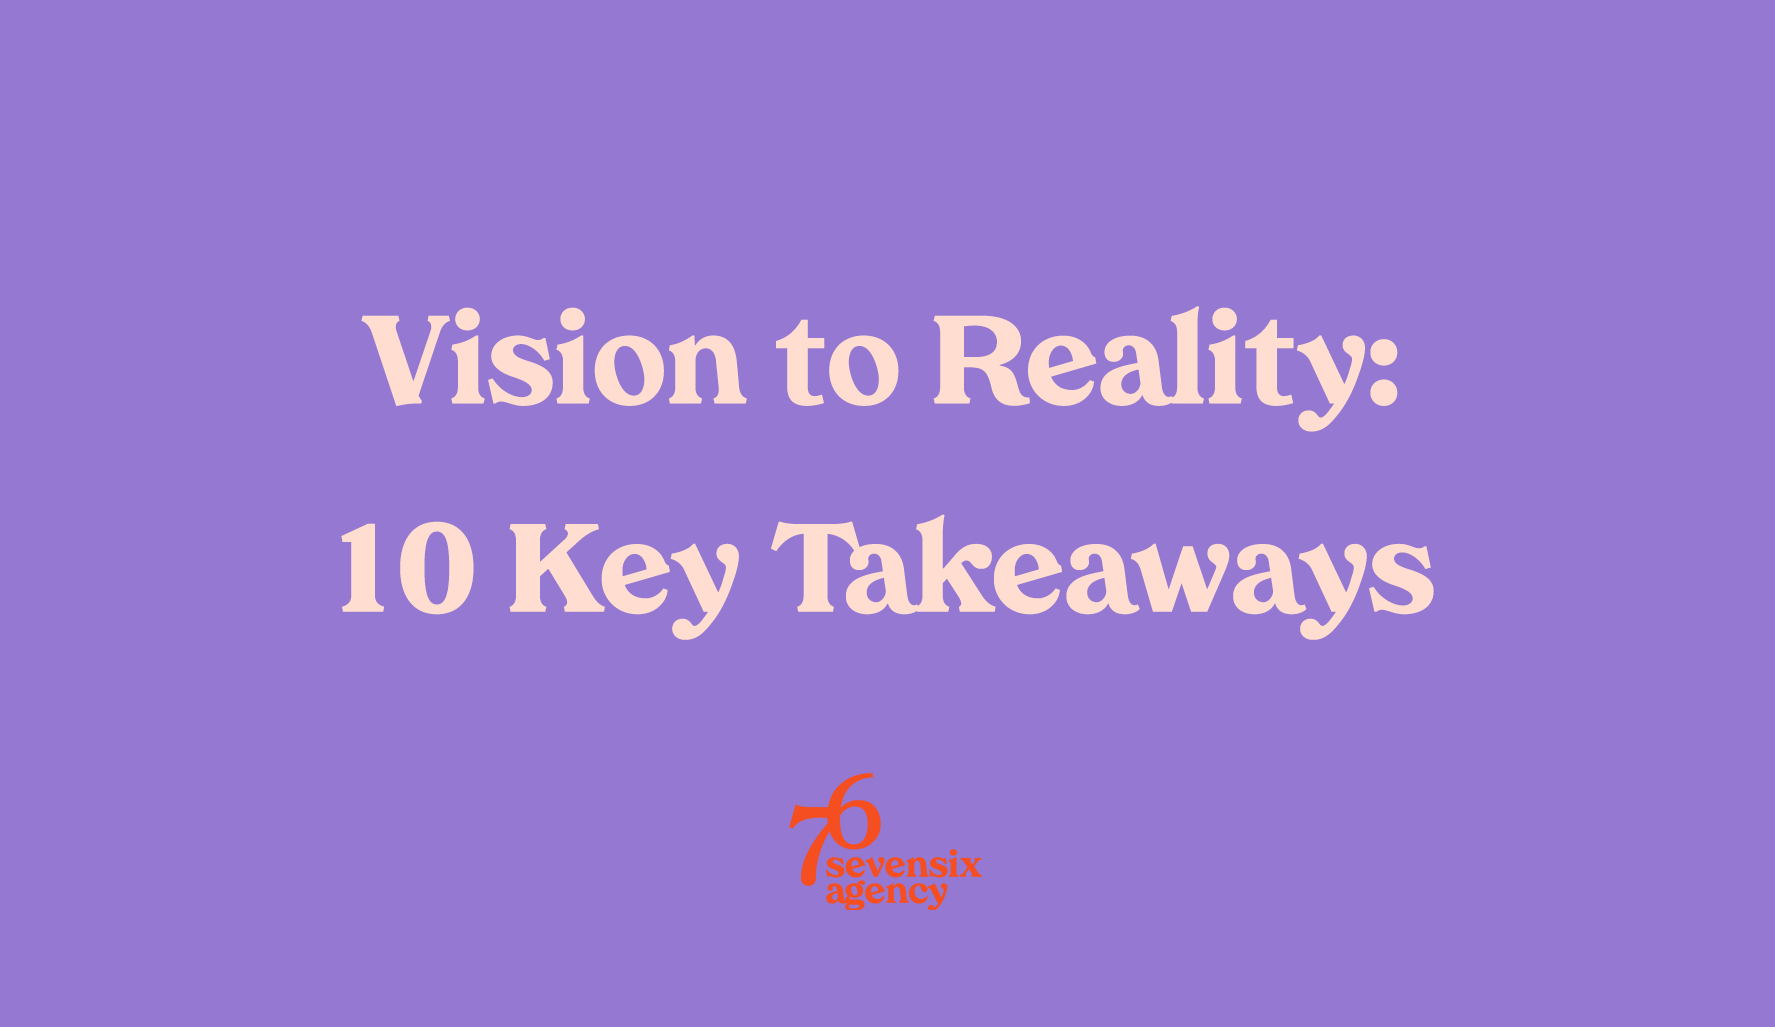 10 Takeaways from #VisiontoReality2021